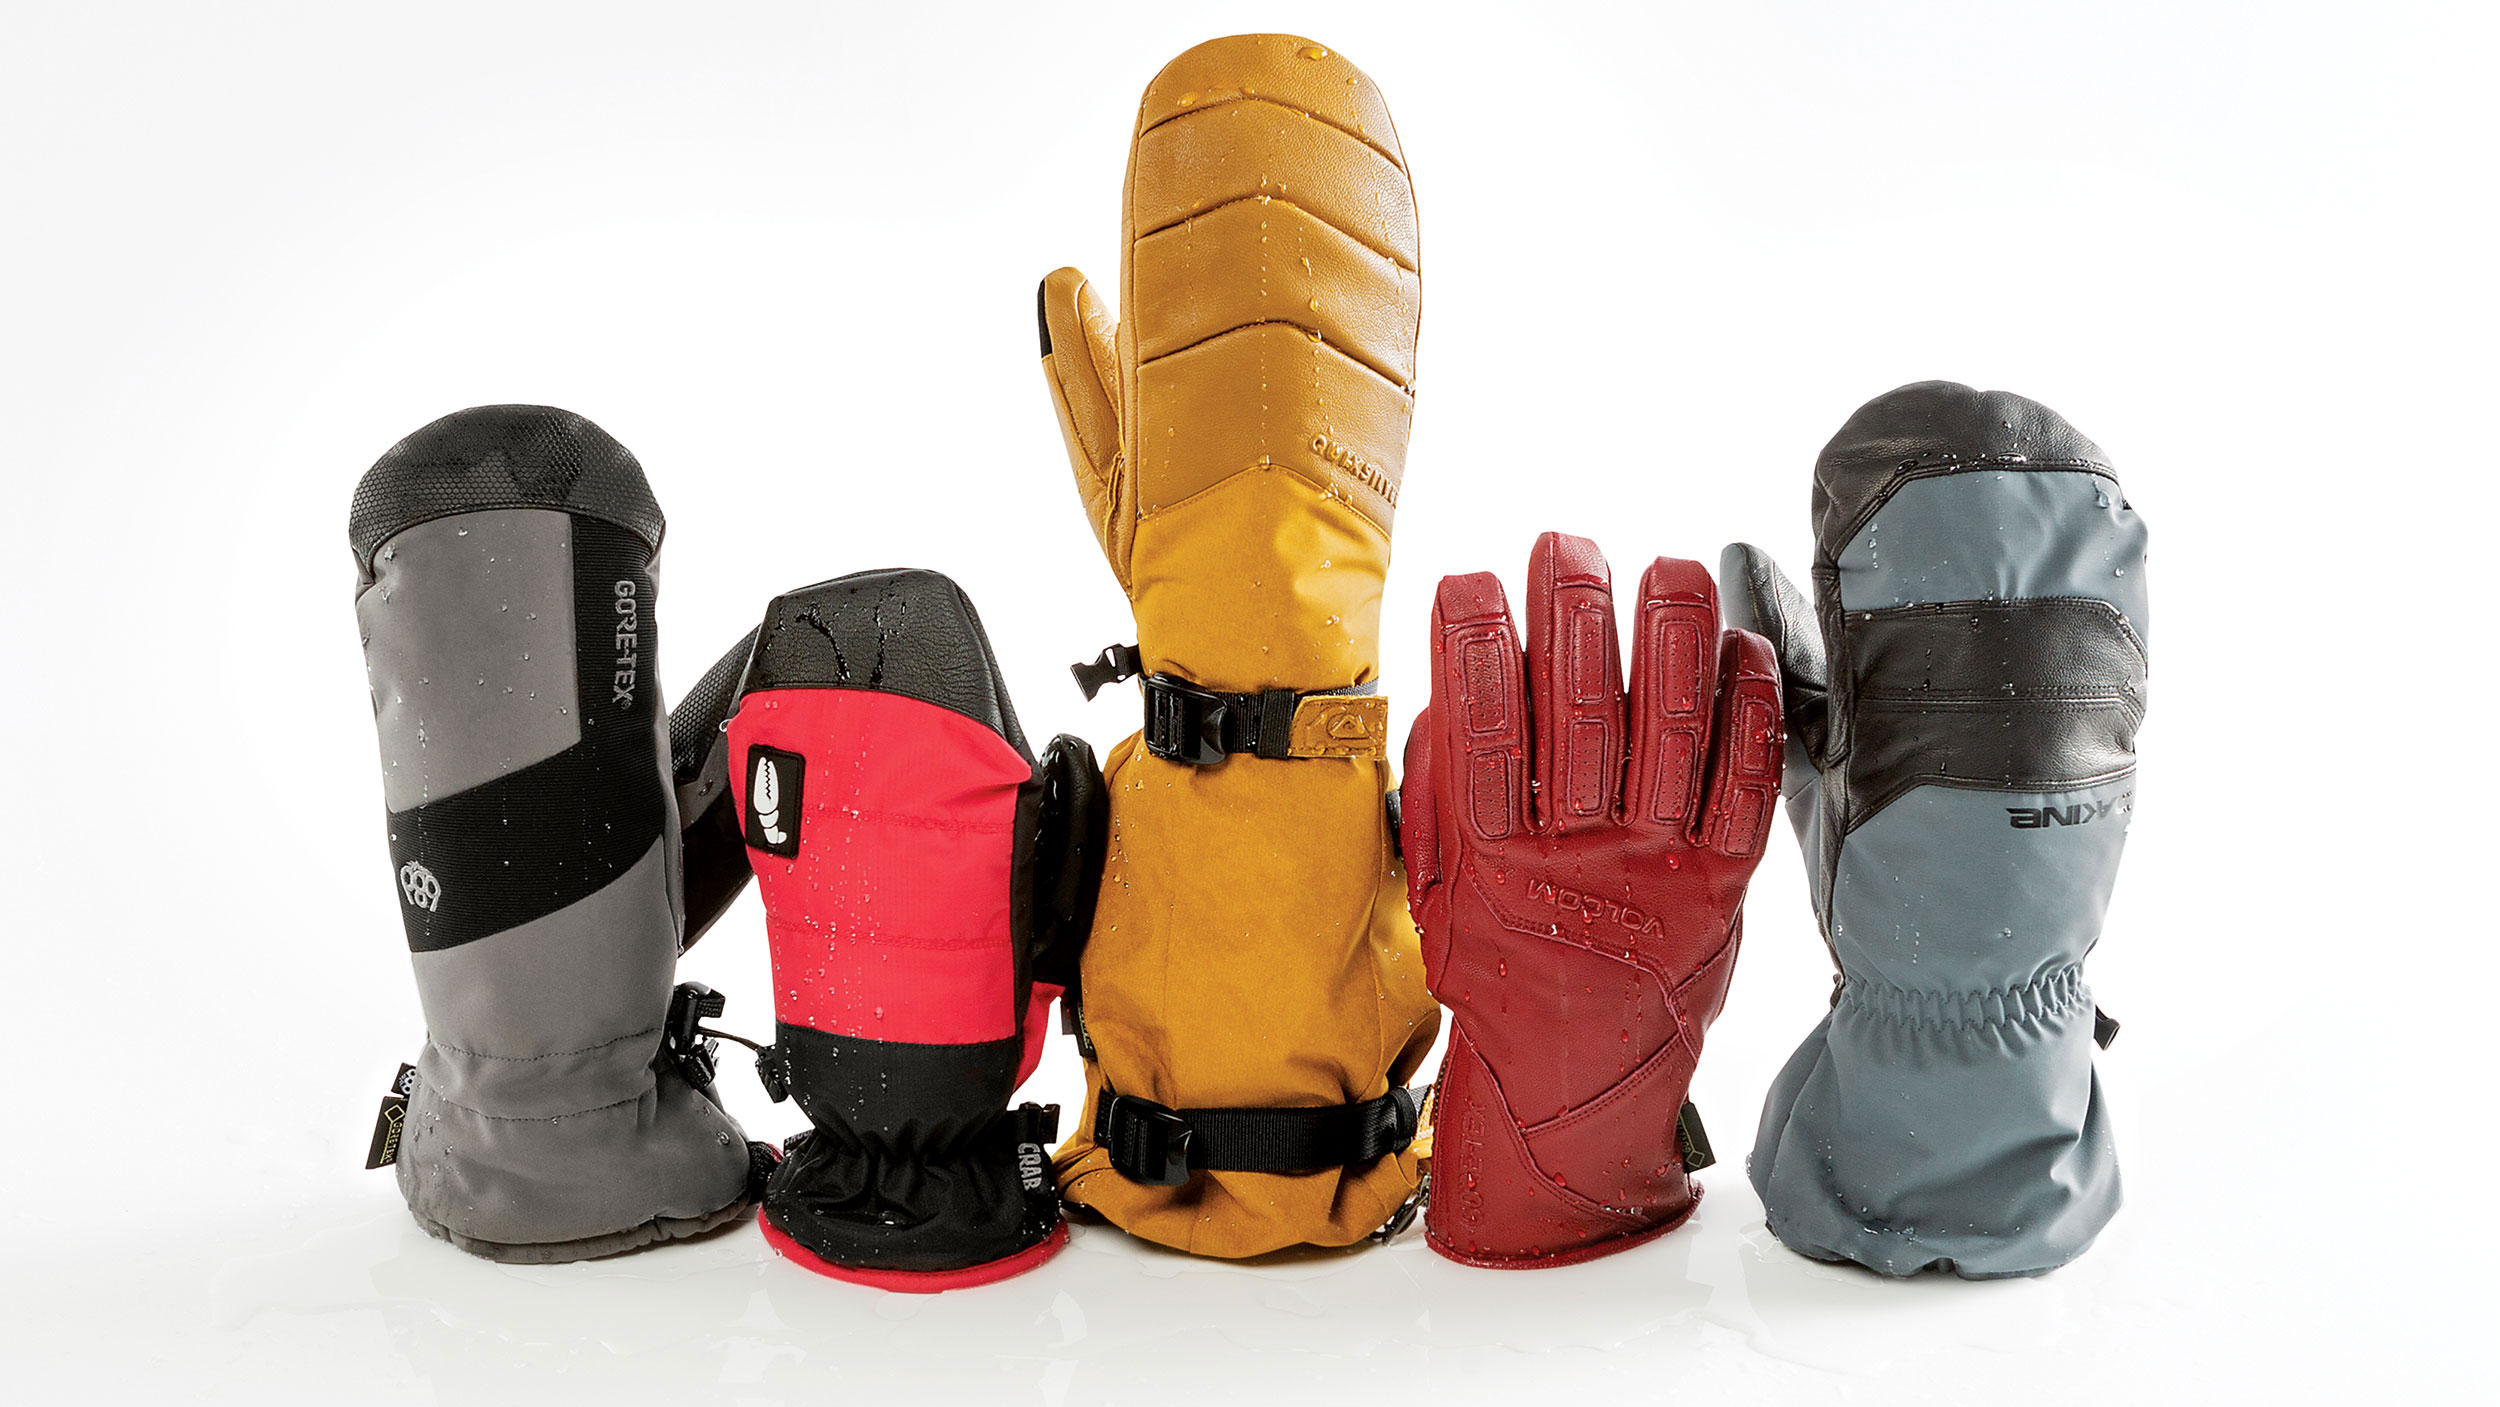 Best Snowboard Mittens 2020 The Best Snowboarding Gloves and Mittens from 2018 2019